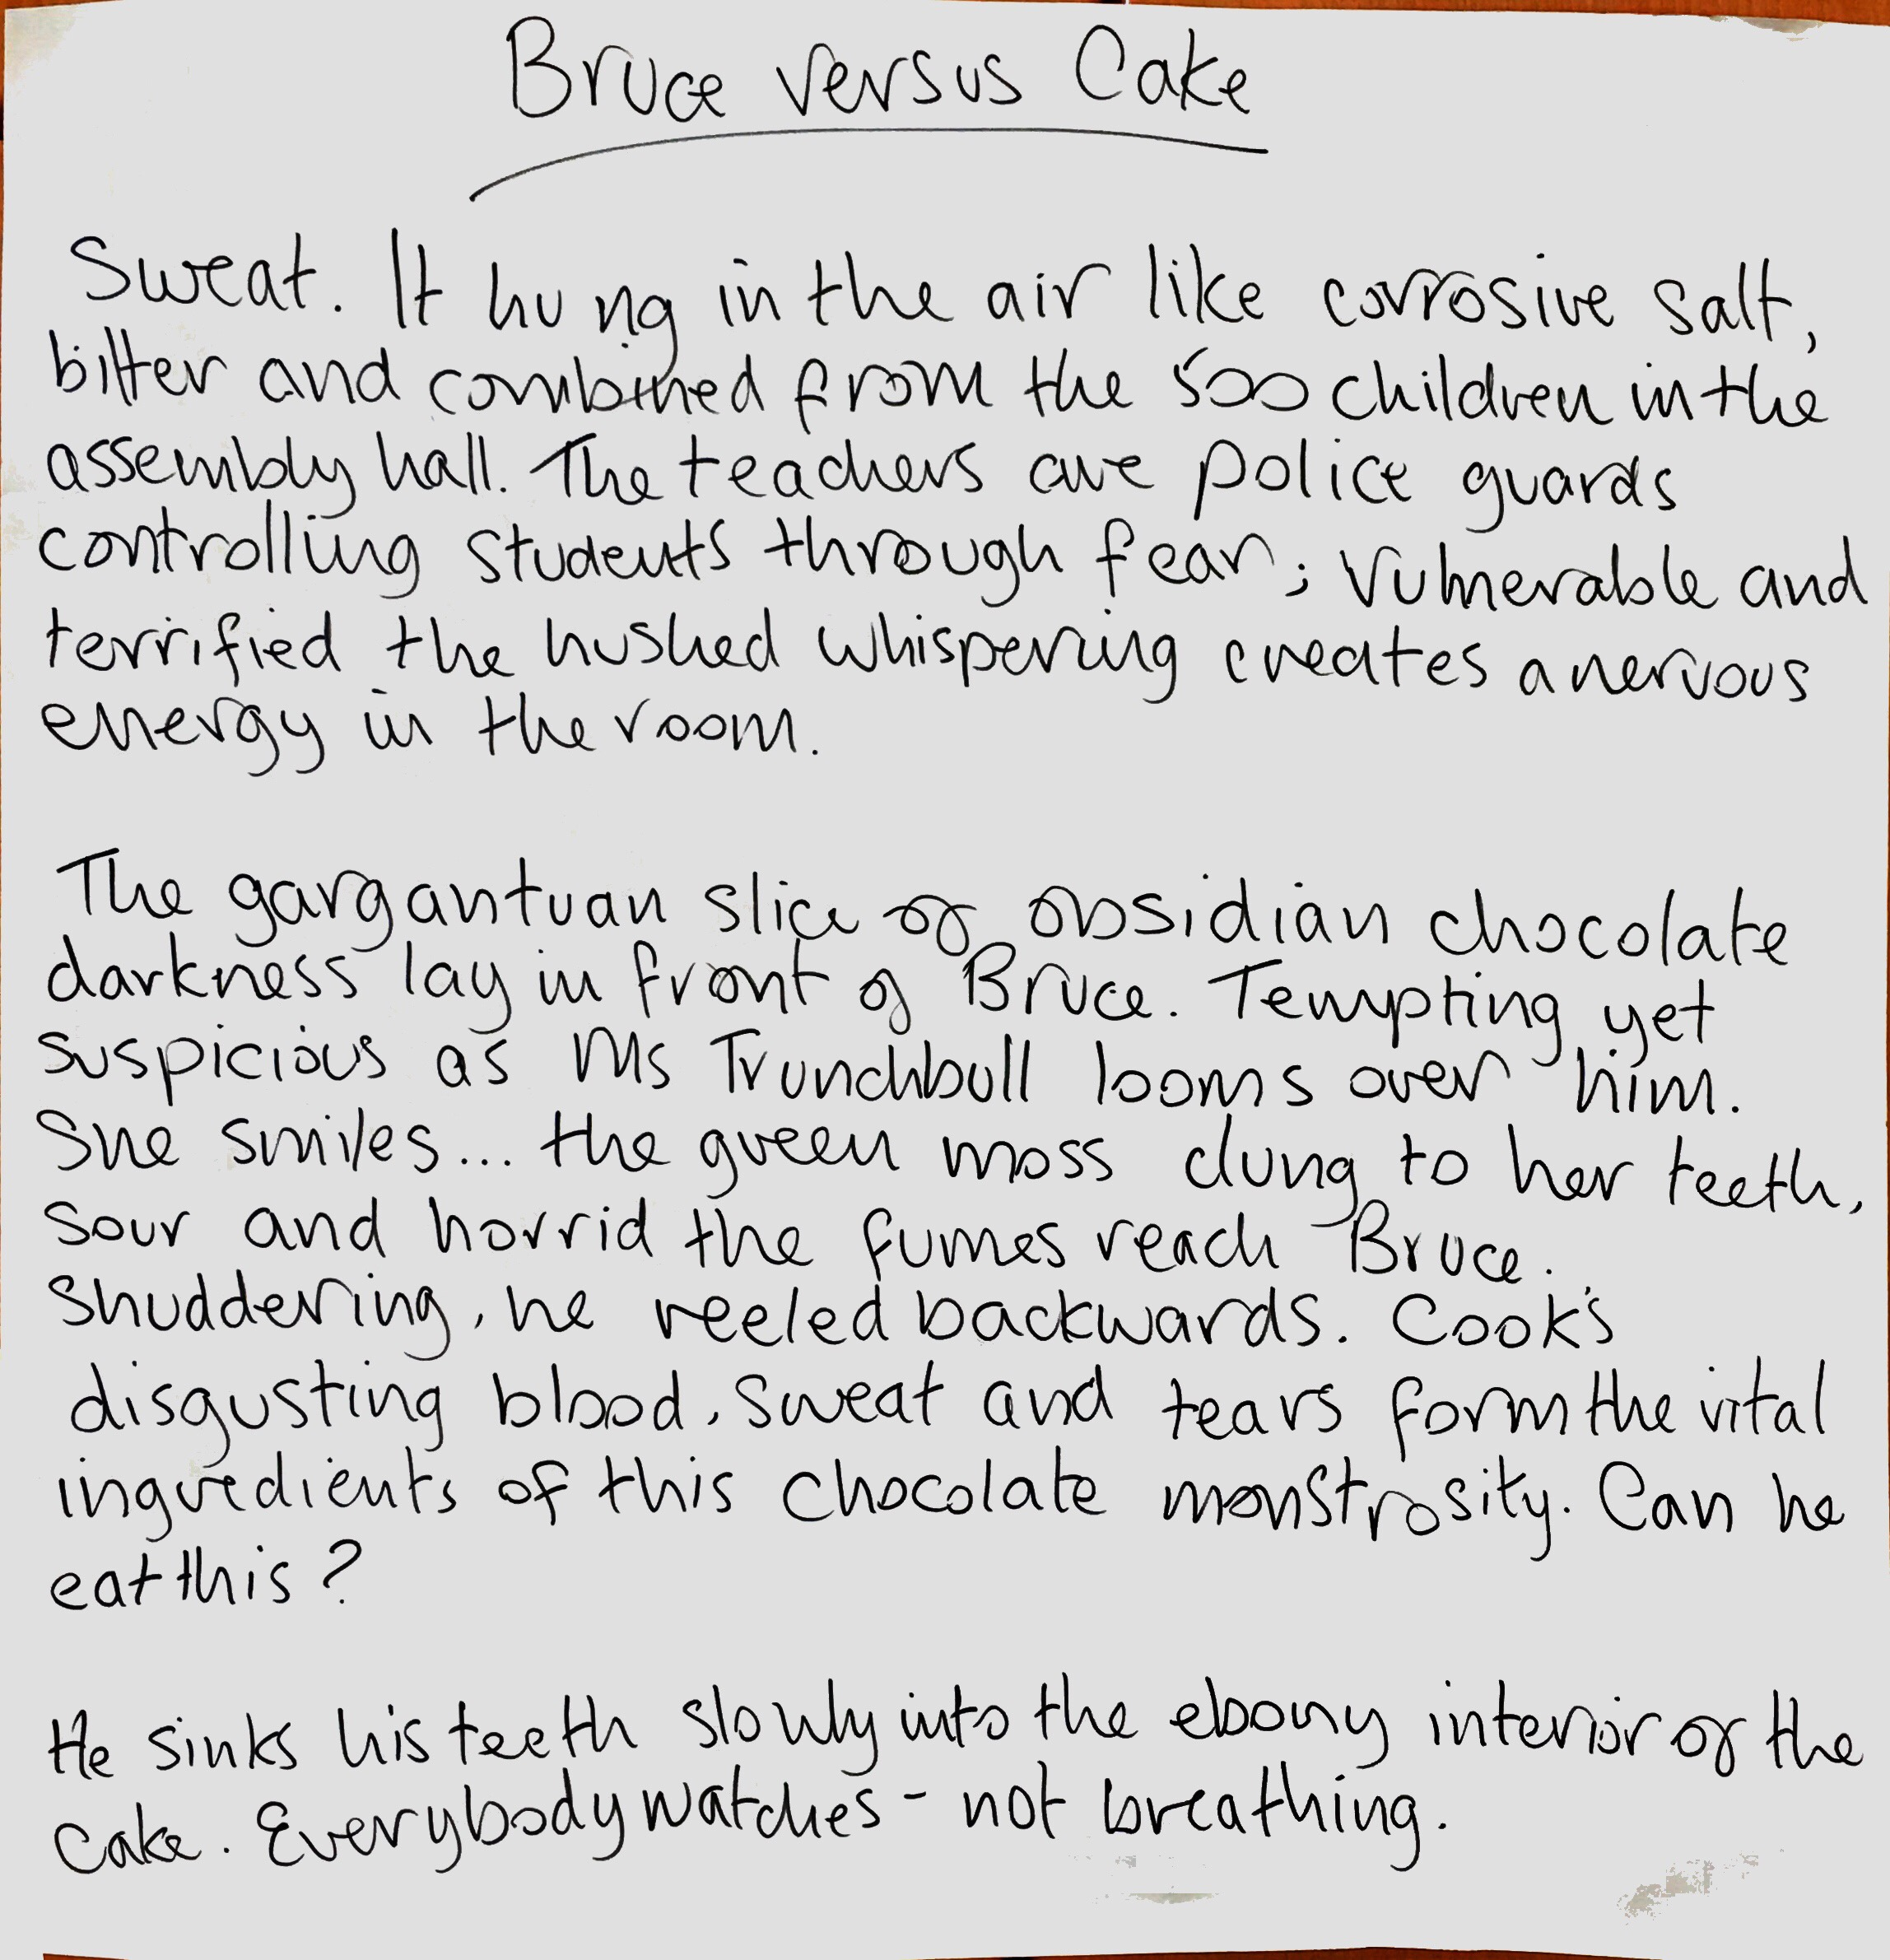 Creative Writing - Bruce vs. Cake